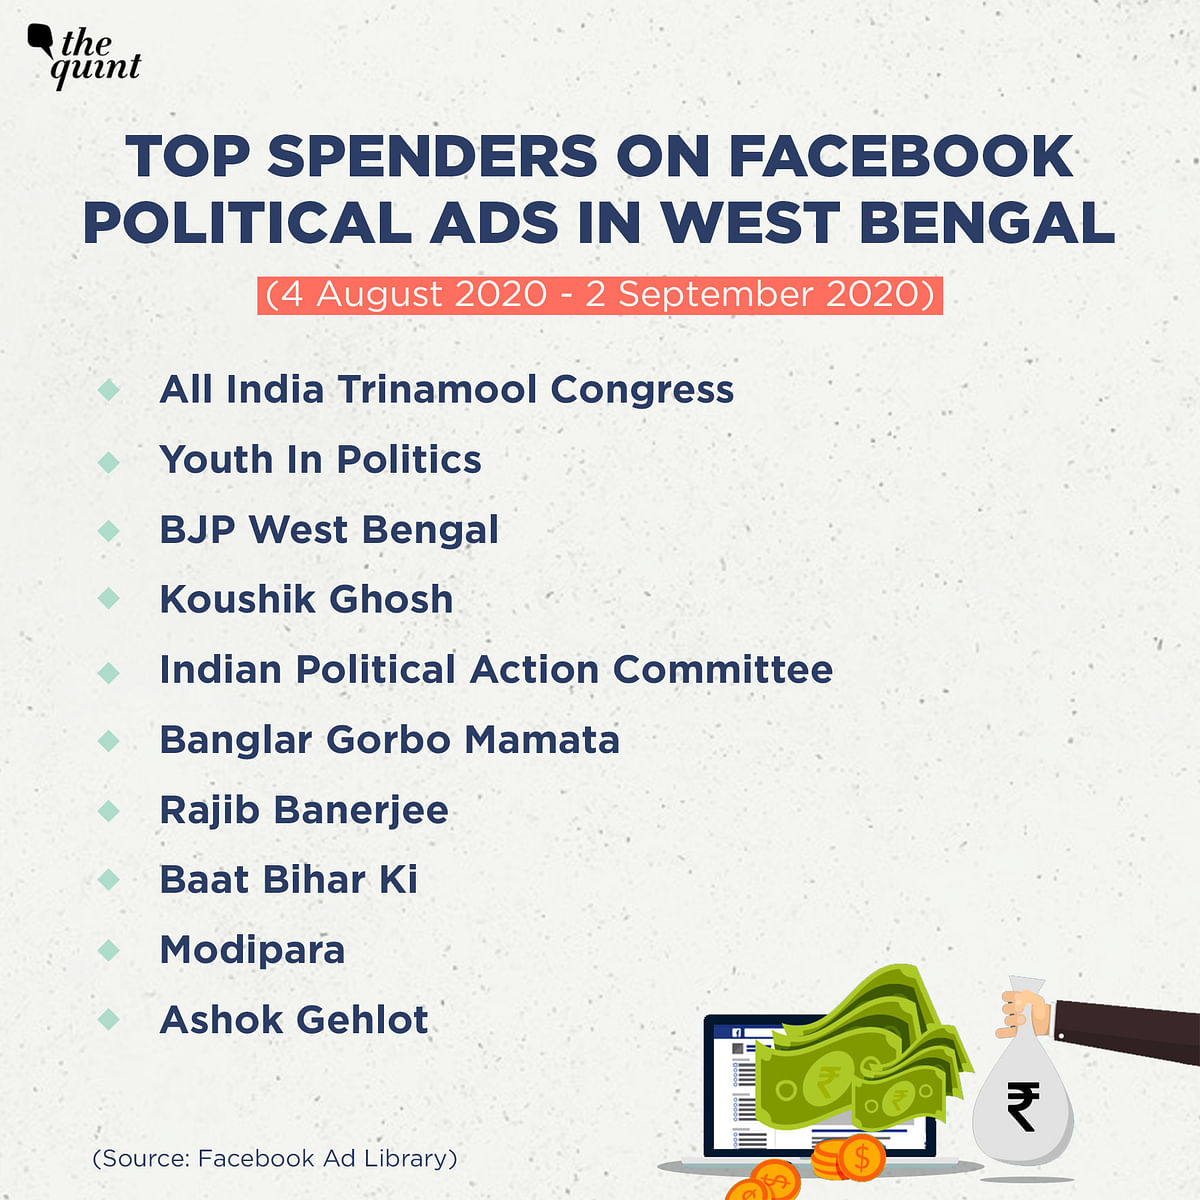 Top spenders on Facebook political ads in West Bengal.